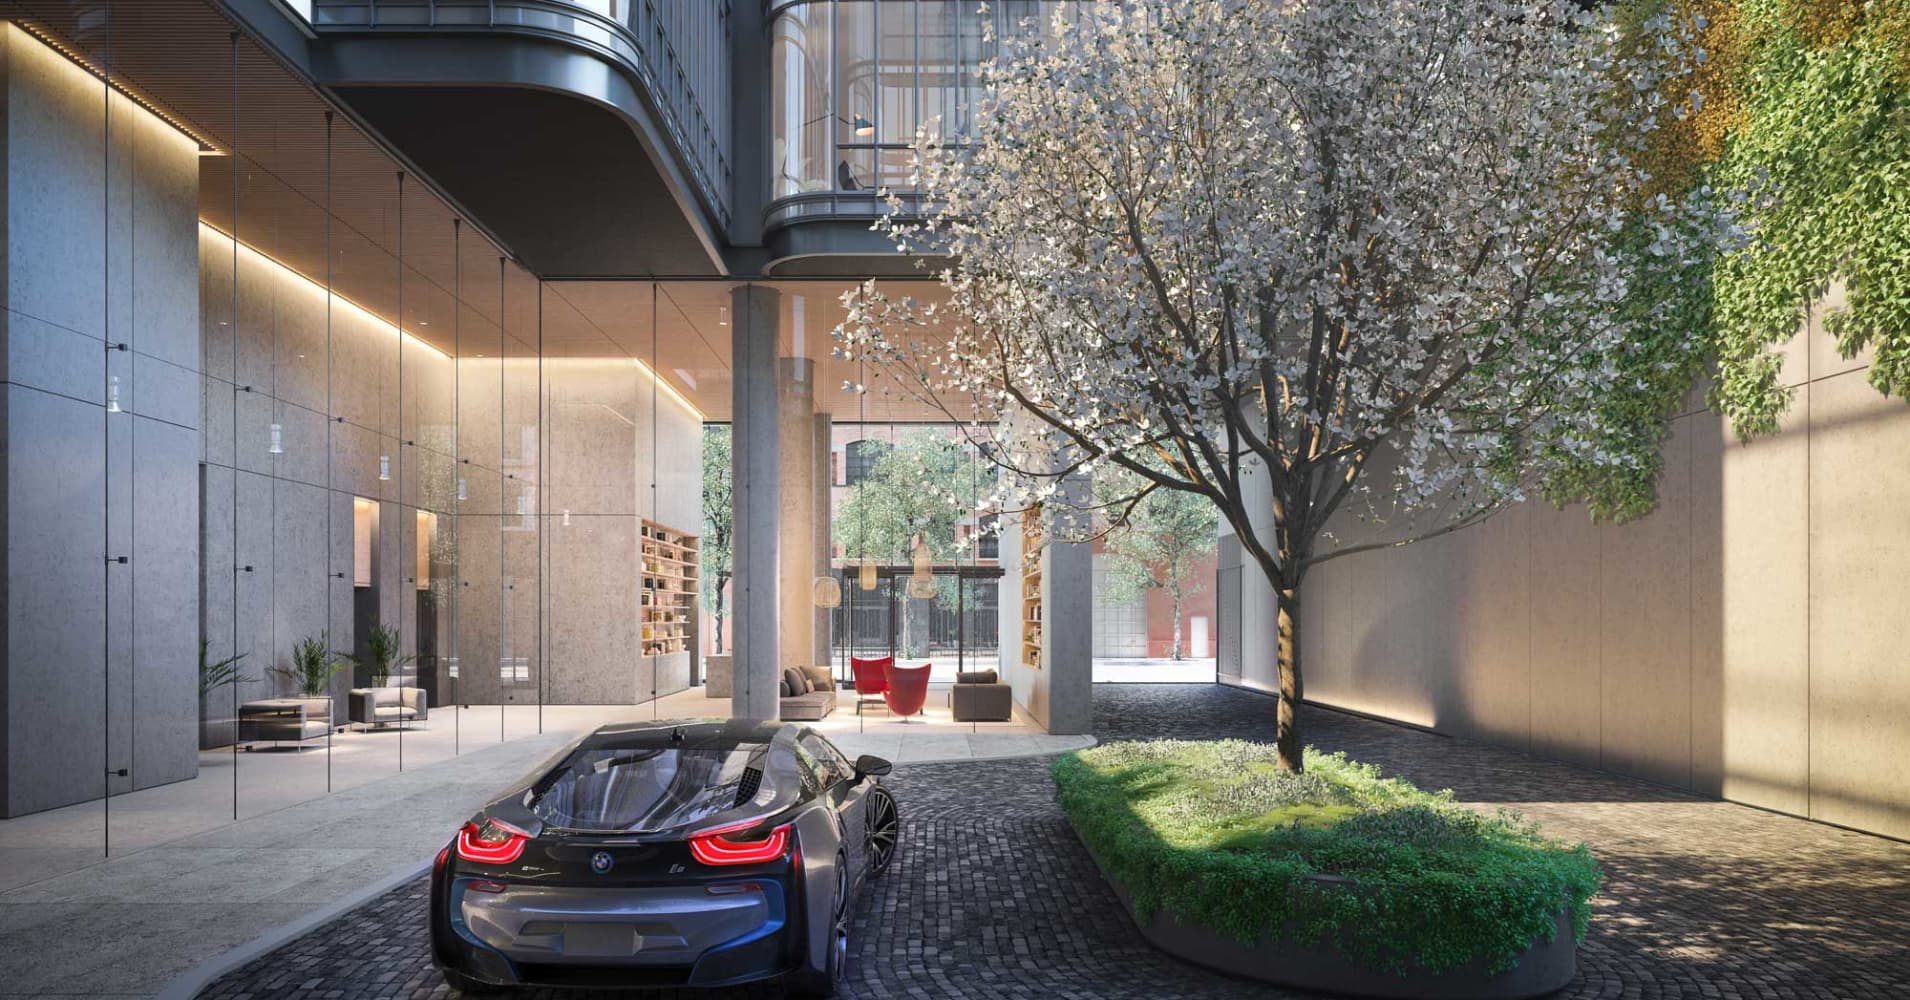 Luxury NYC Condo Offers Buyers BMW Car-sharing, Or $550K